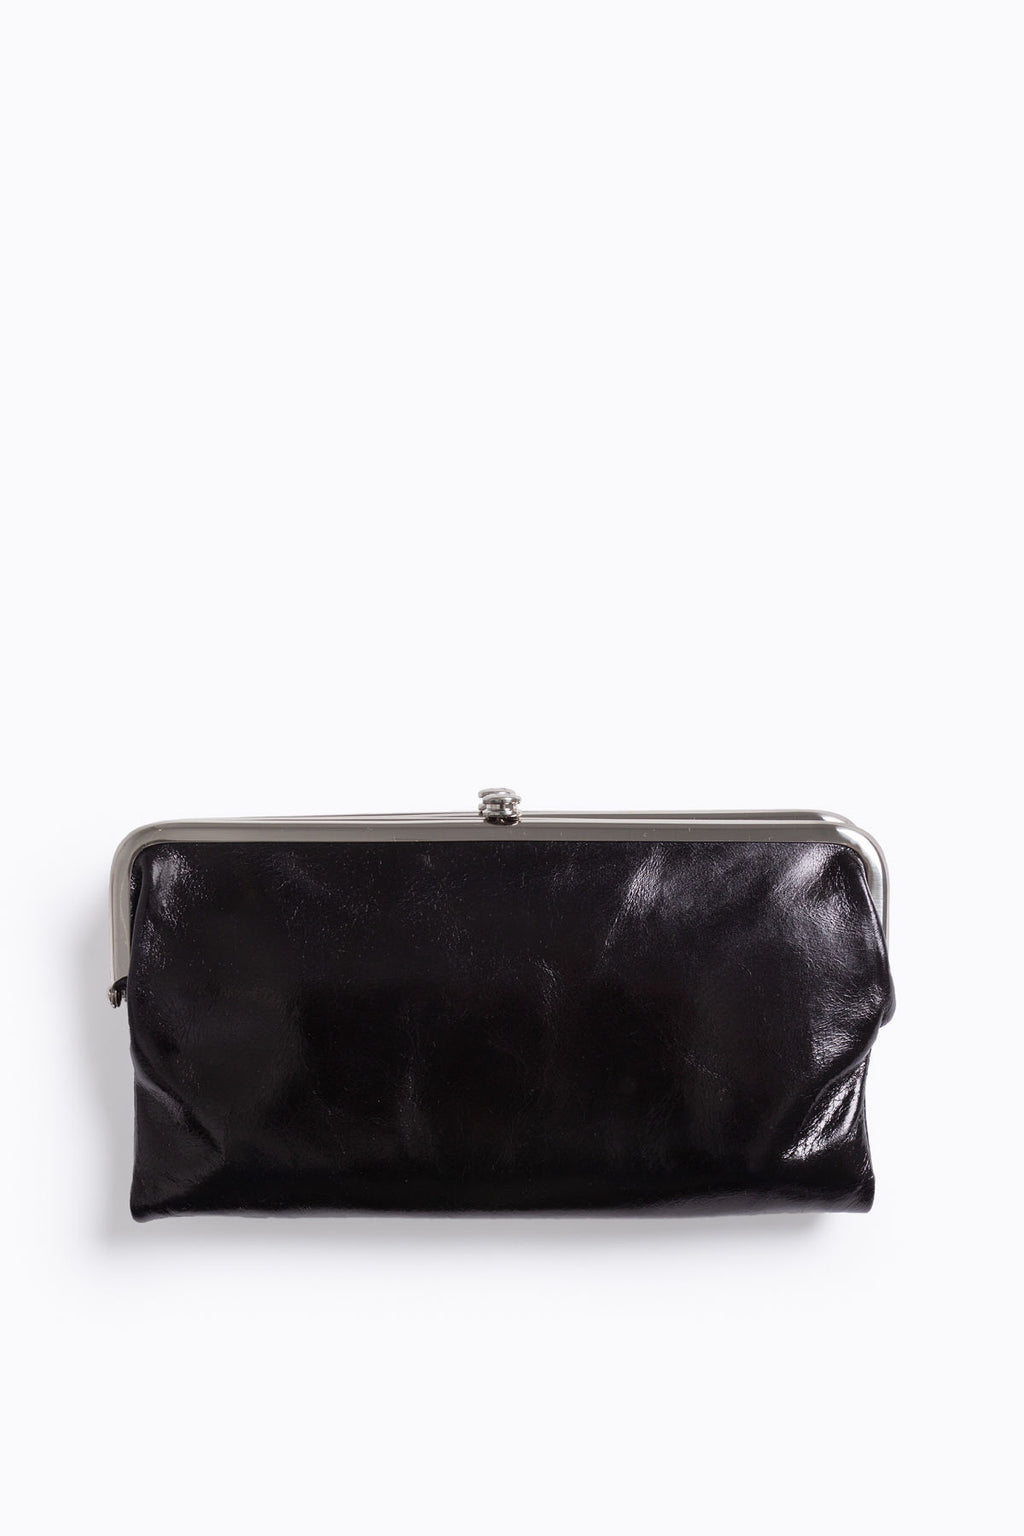 Hobo: Lauren Clutch Wallet in Black